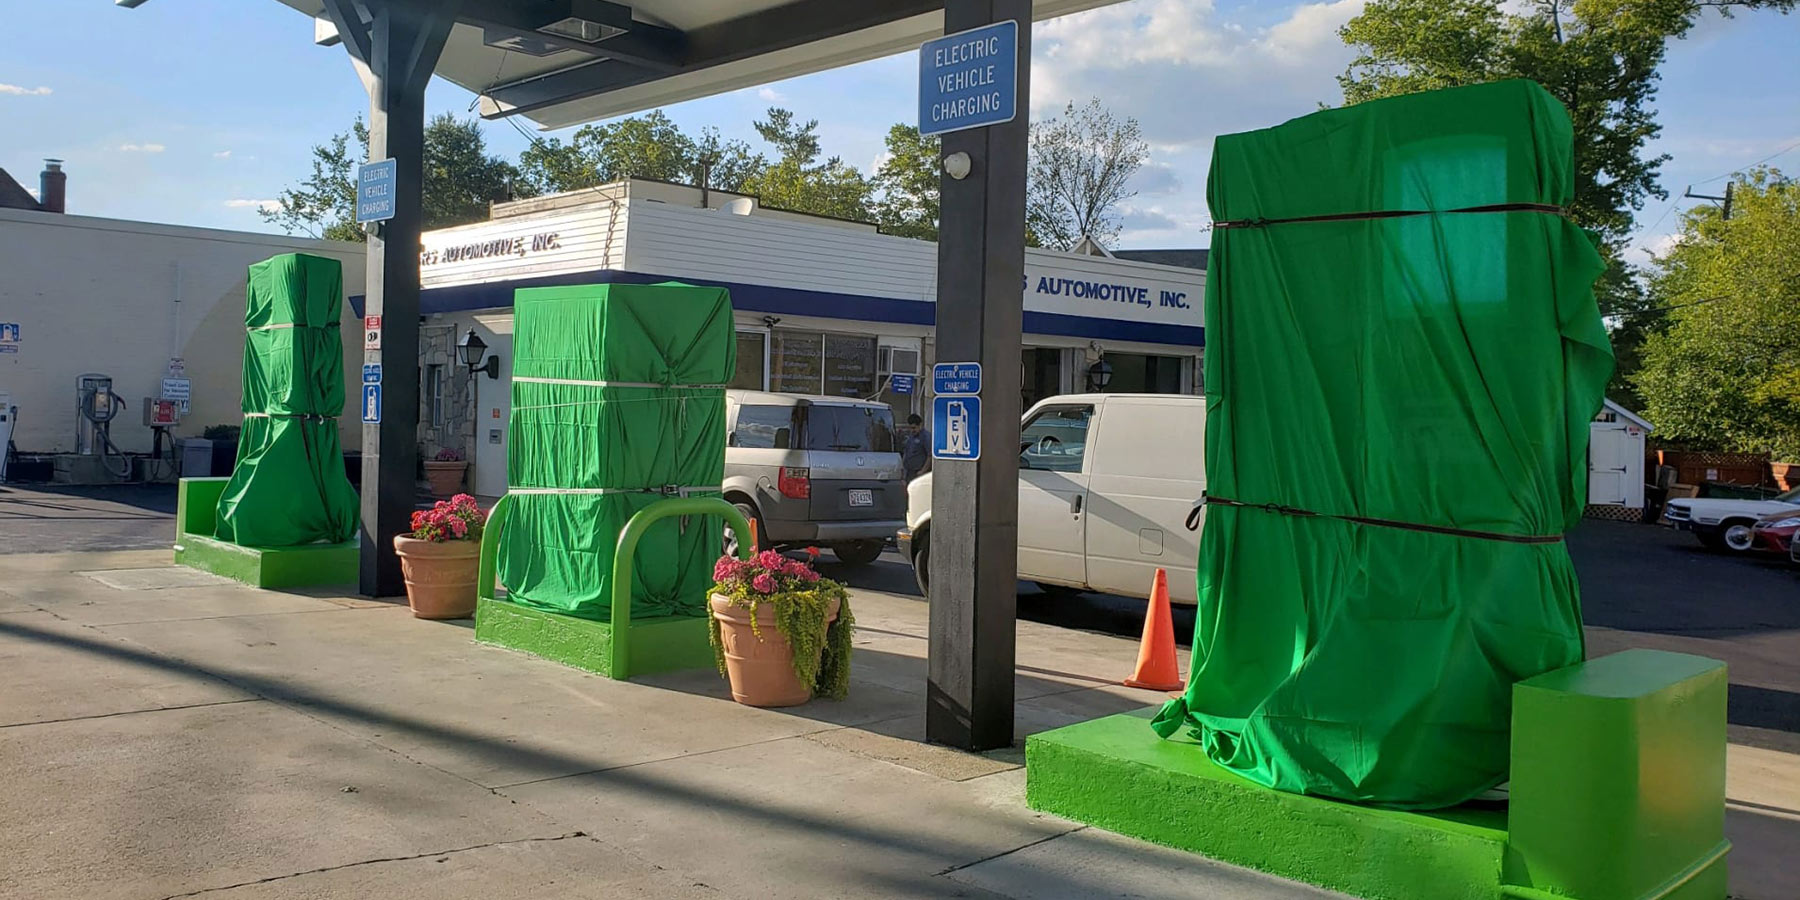 The first gas station to be converted to electric charging. It happened in September 2019 in Takoma Park, Maryland.